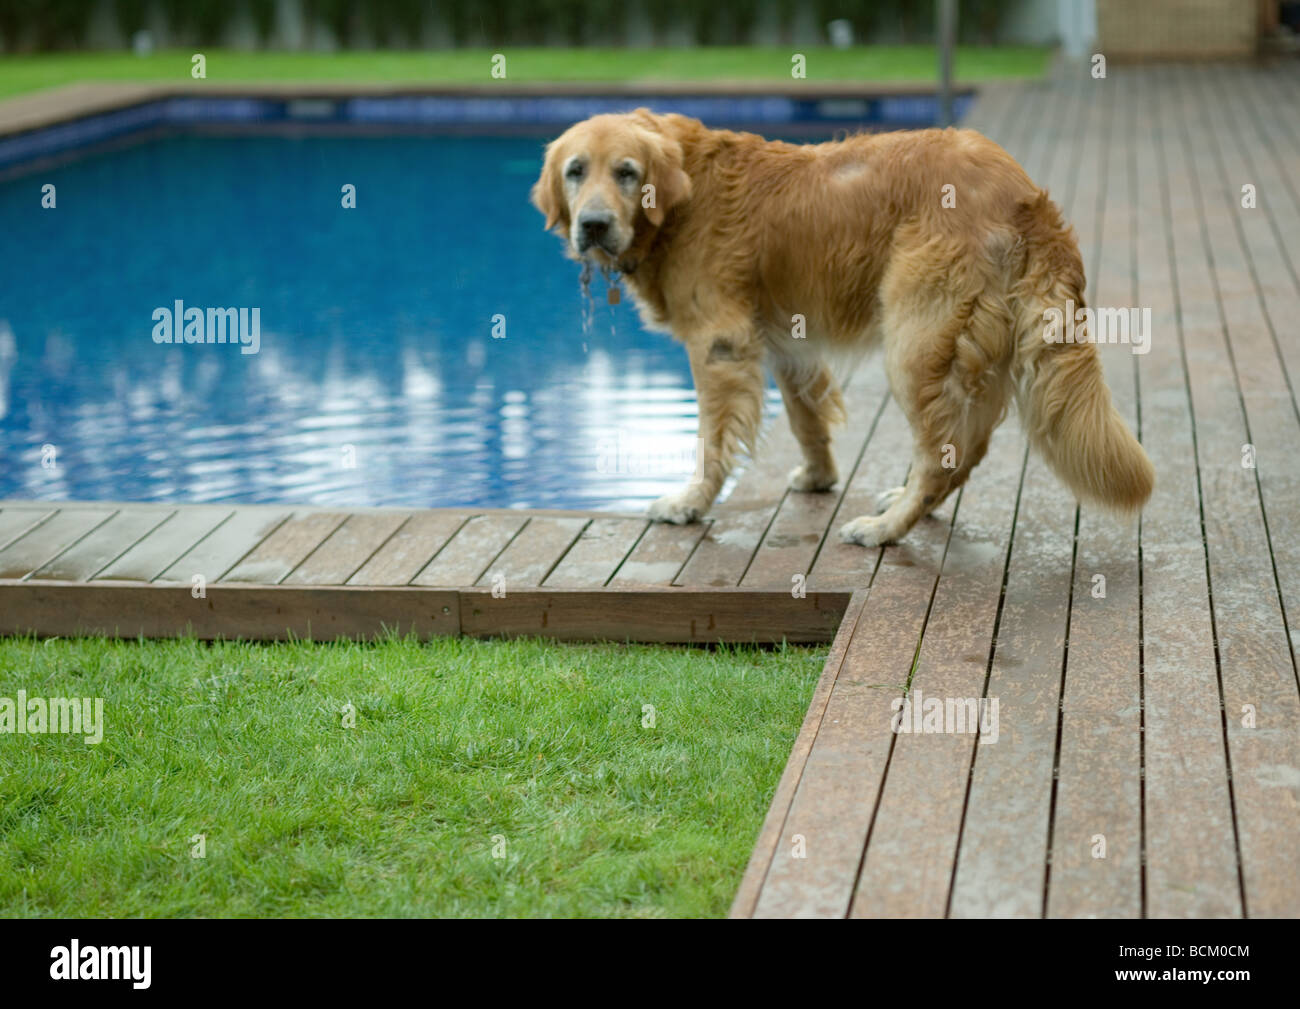 Golden retriever standing by edge of swimming pool, looking at camera - Stock Image